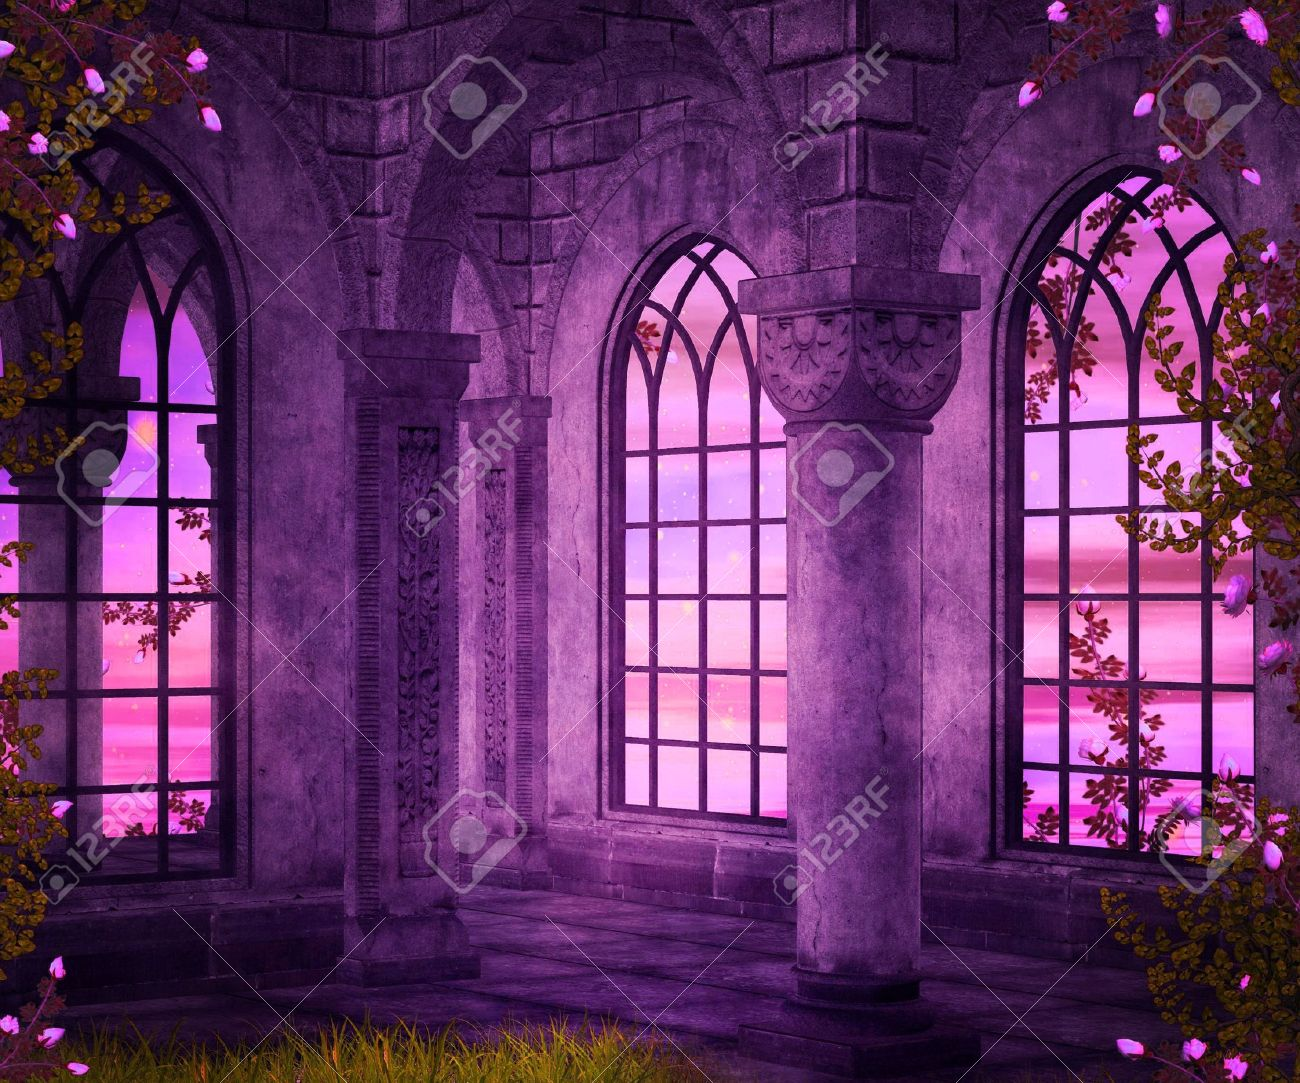 castle interior fantasy backdrop stock photo, picture and royalty